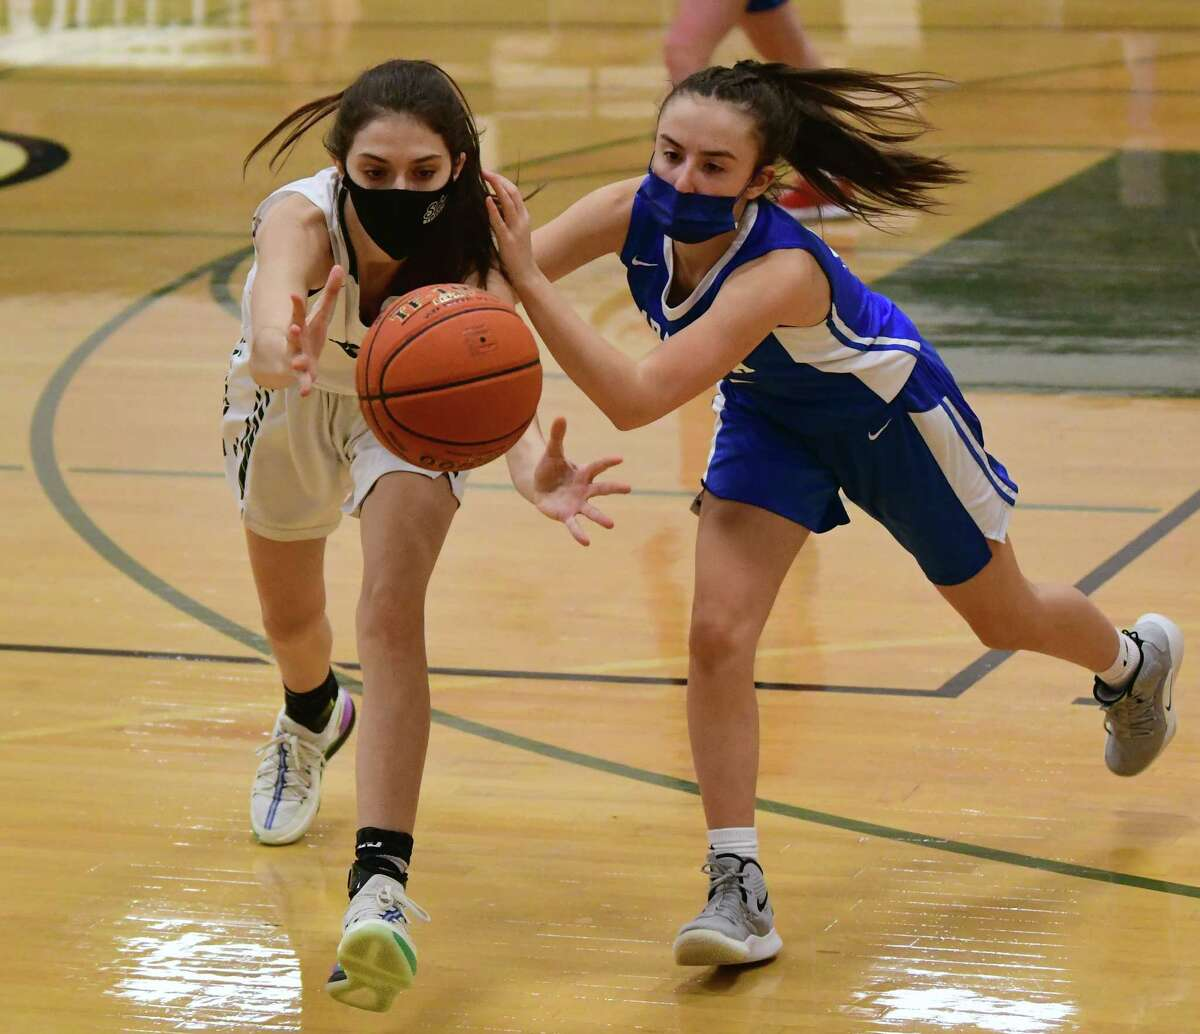 Shenendehowa's Sarah Jacques and Saratoga's Ella Spain battle over a loose ball during a basketball game on Friday, March 12, 2021 in Clifton Park, N.Y. (Lori Van Buren/Times Union)